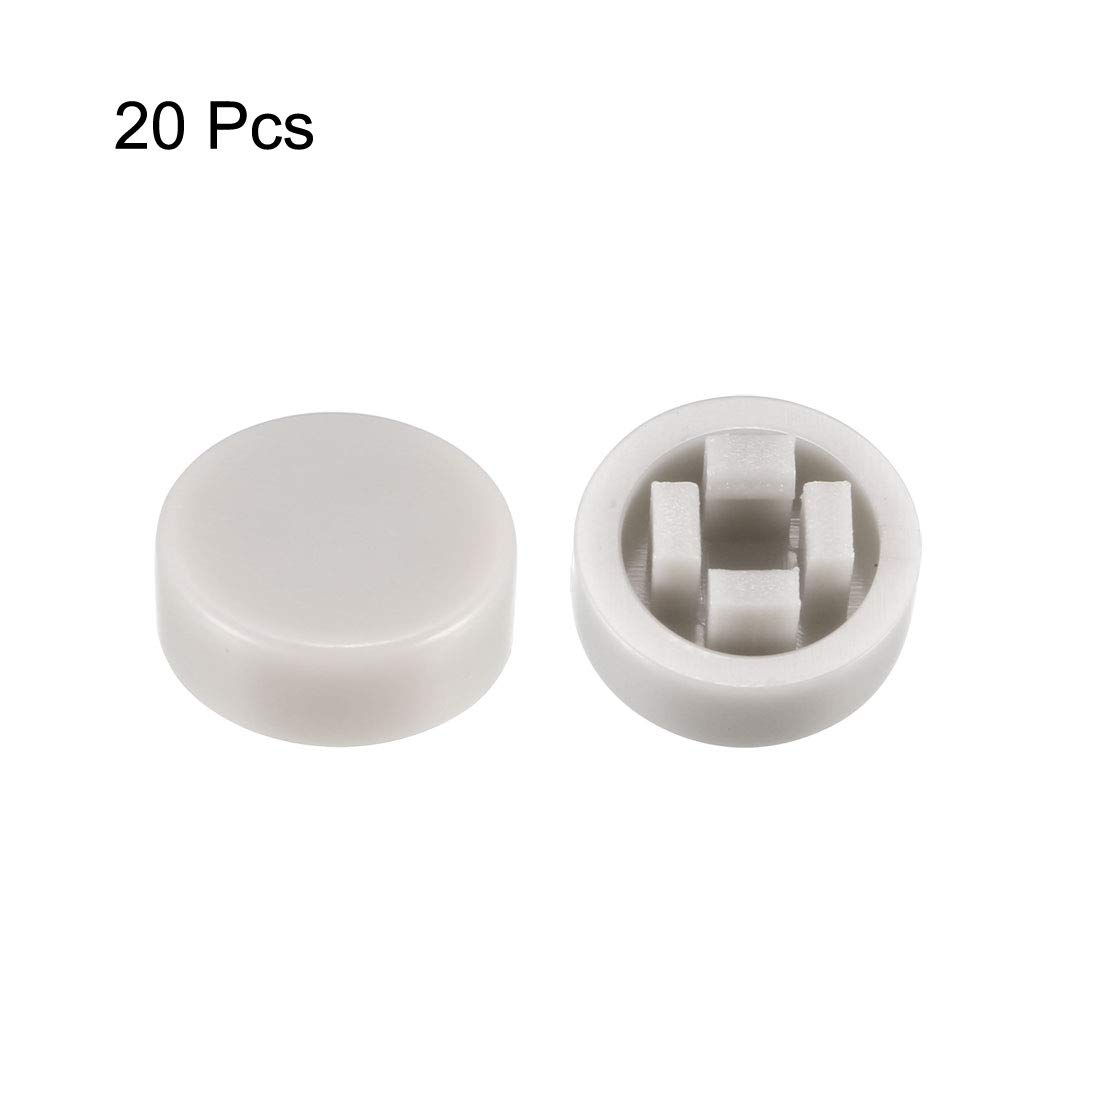 uxcell 20Pcs 3.1mm Hole Dia Plastic Push Button Tactile Switch Caps Cover Keycaps Protector Orange for 6x6 Tact Switch